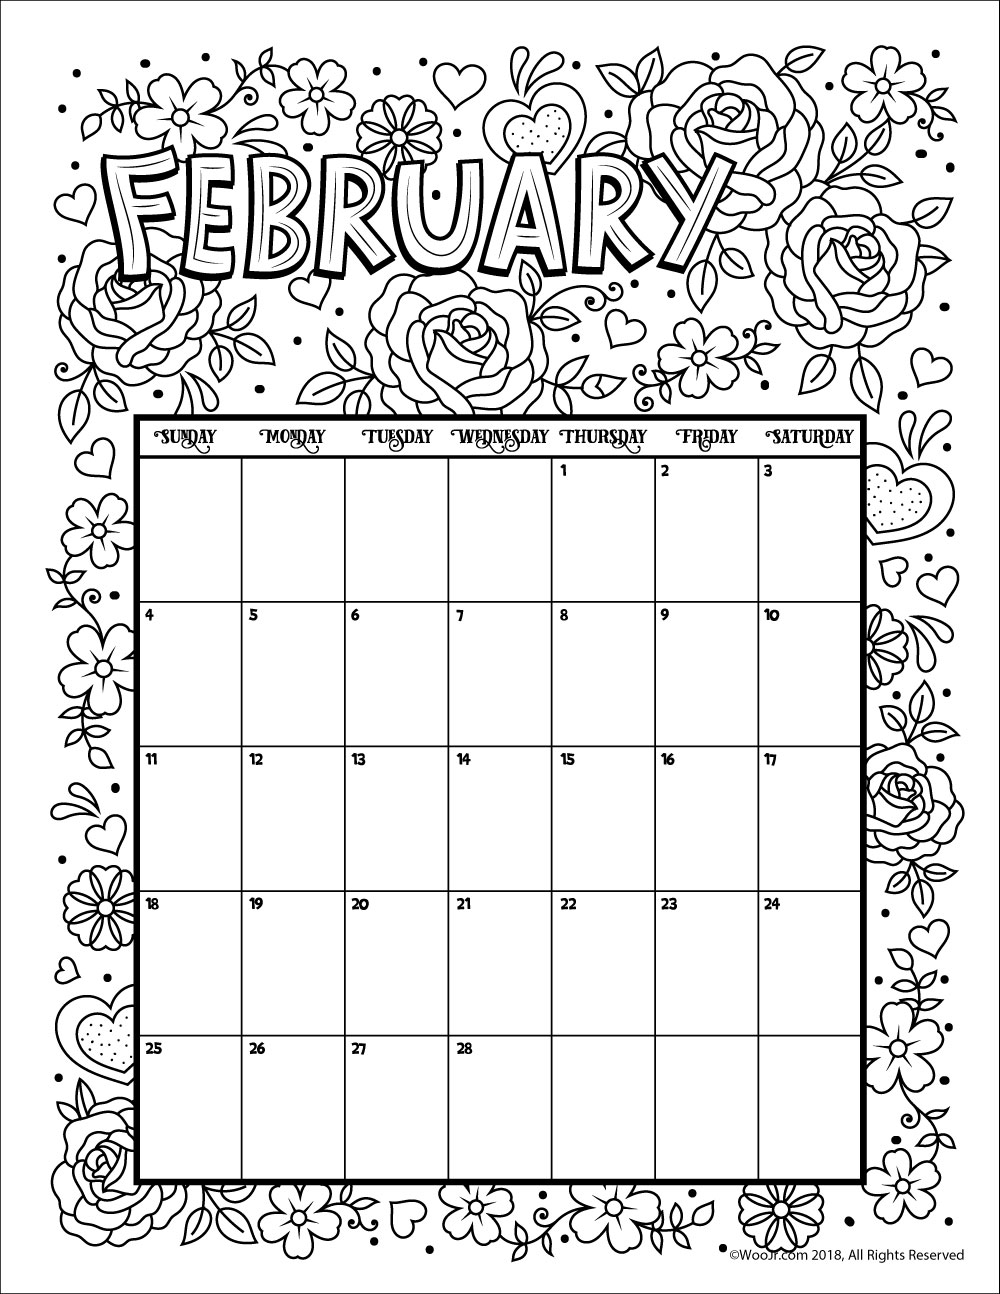 Printable Coloring Calendar for 2019 (and 2018!) | Woo! Jr. Kids ...